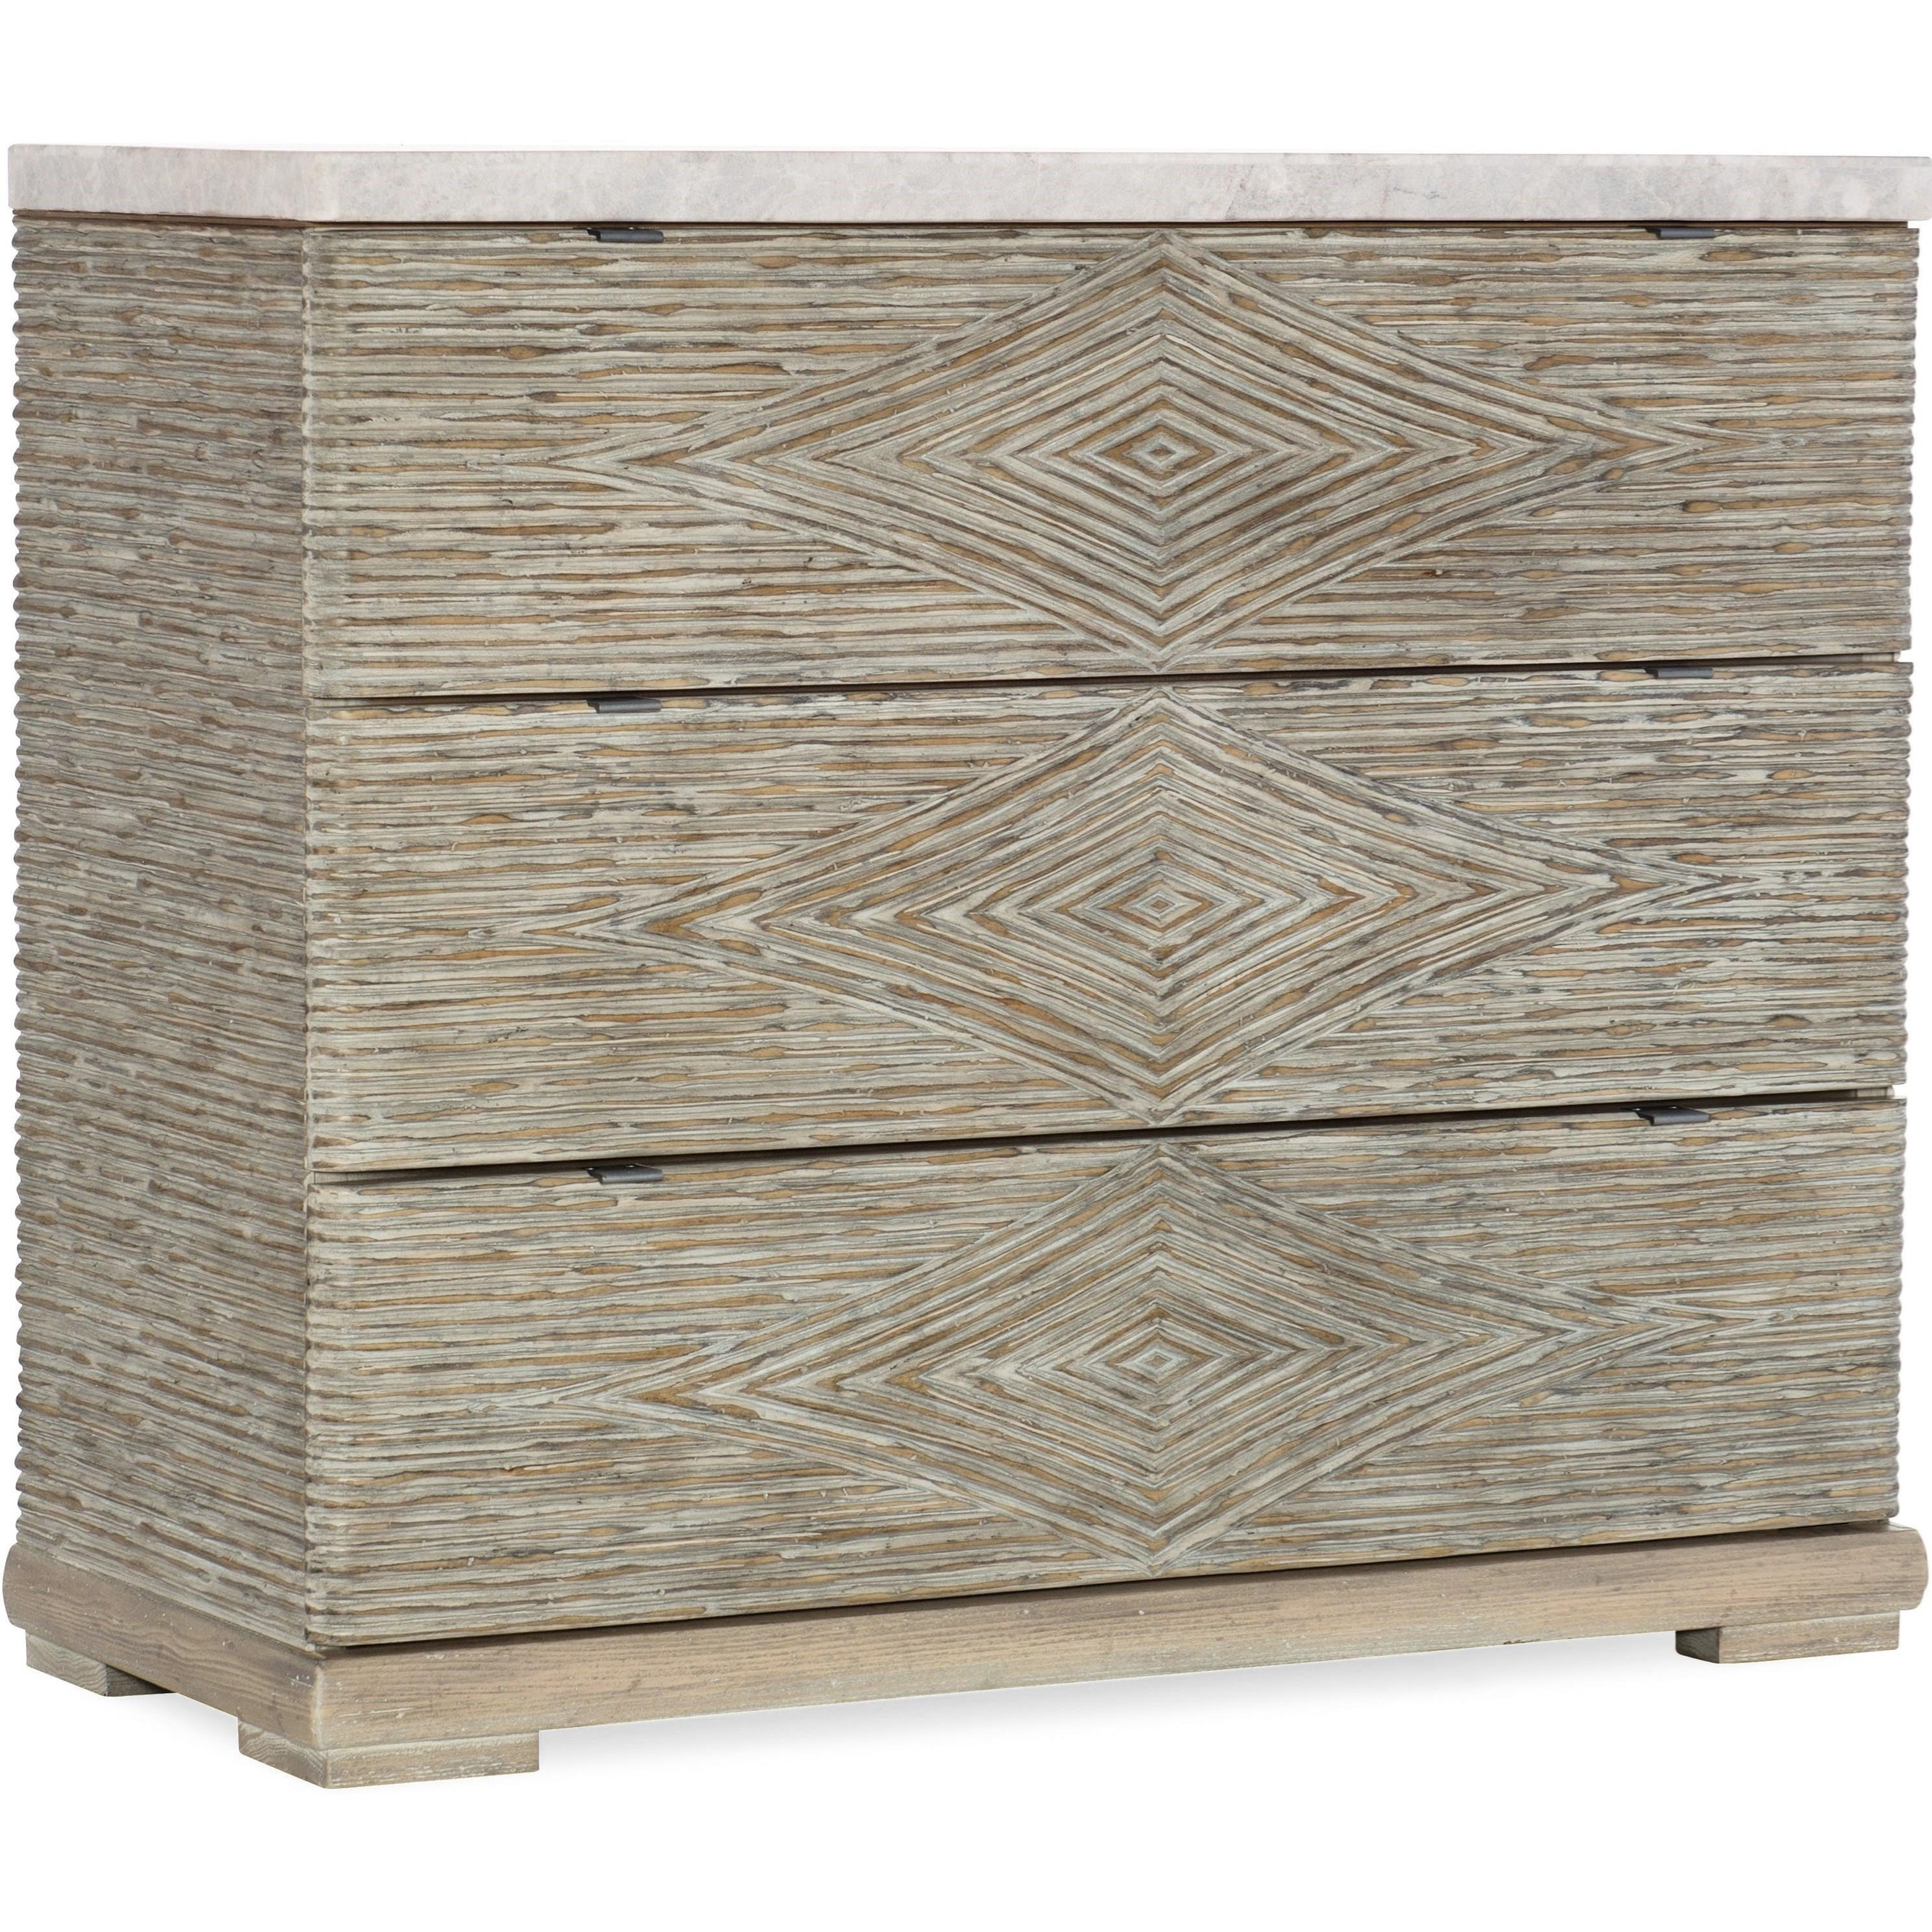 American Life-Amani Three-Drawer Accent Chest by Hooker Furniture at Zak's Home